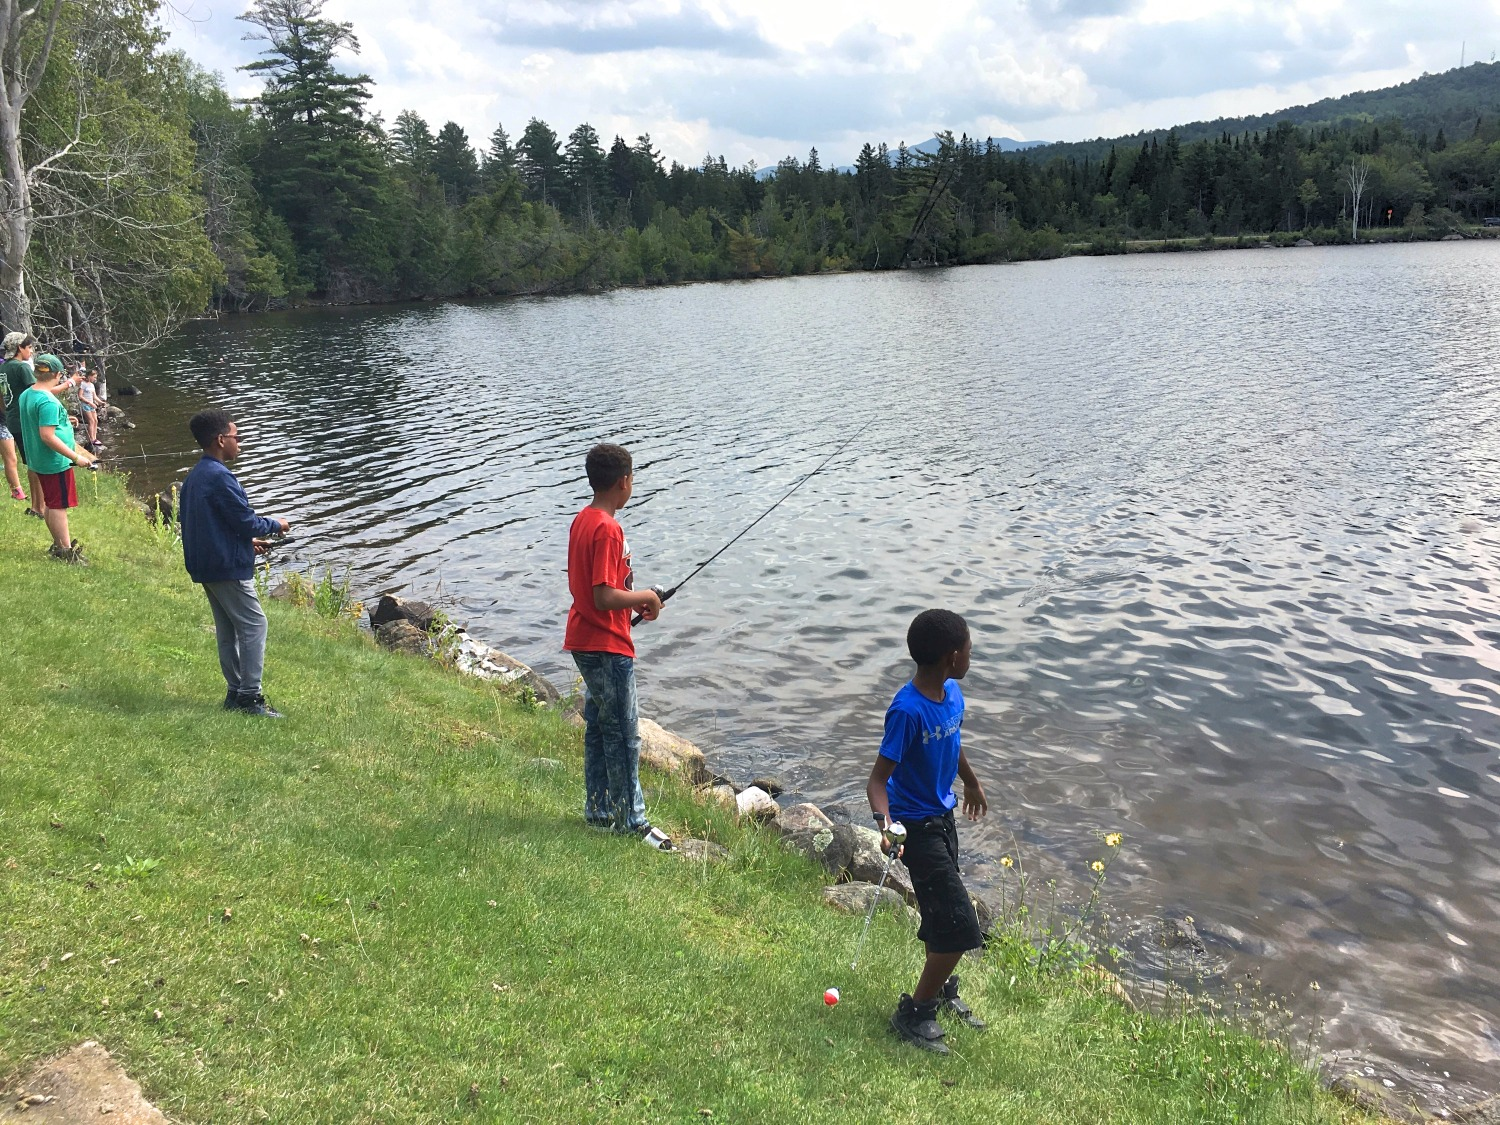 Kids fishing on the shore of Lake colby